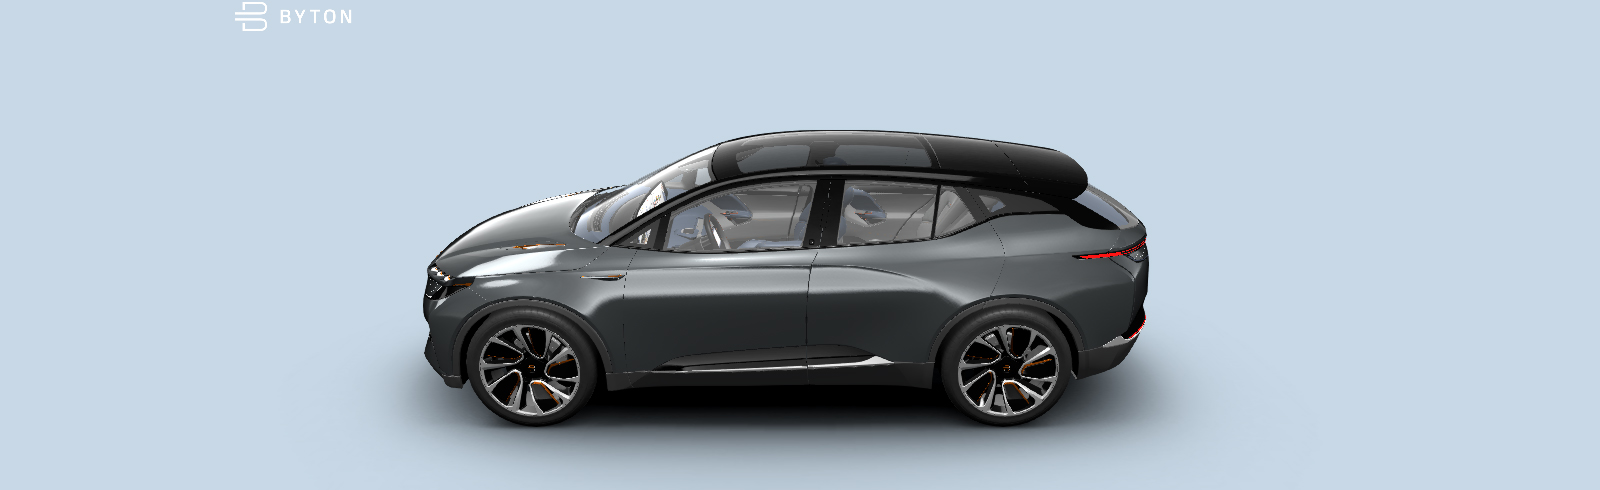 BYTON's M-Byte SUV will debut in mid-2019 and mass production is scheduled for the end of the year